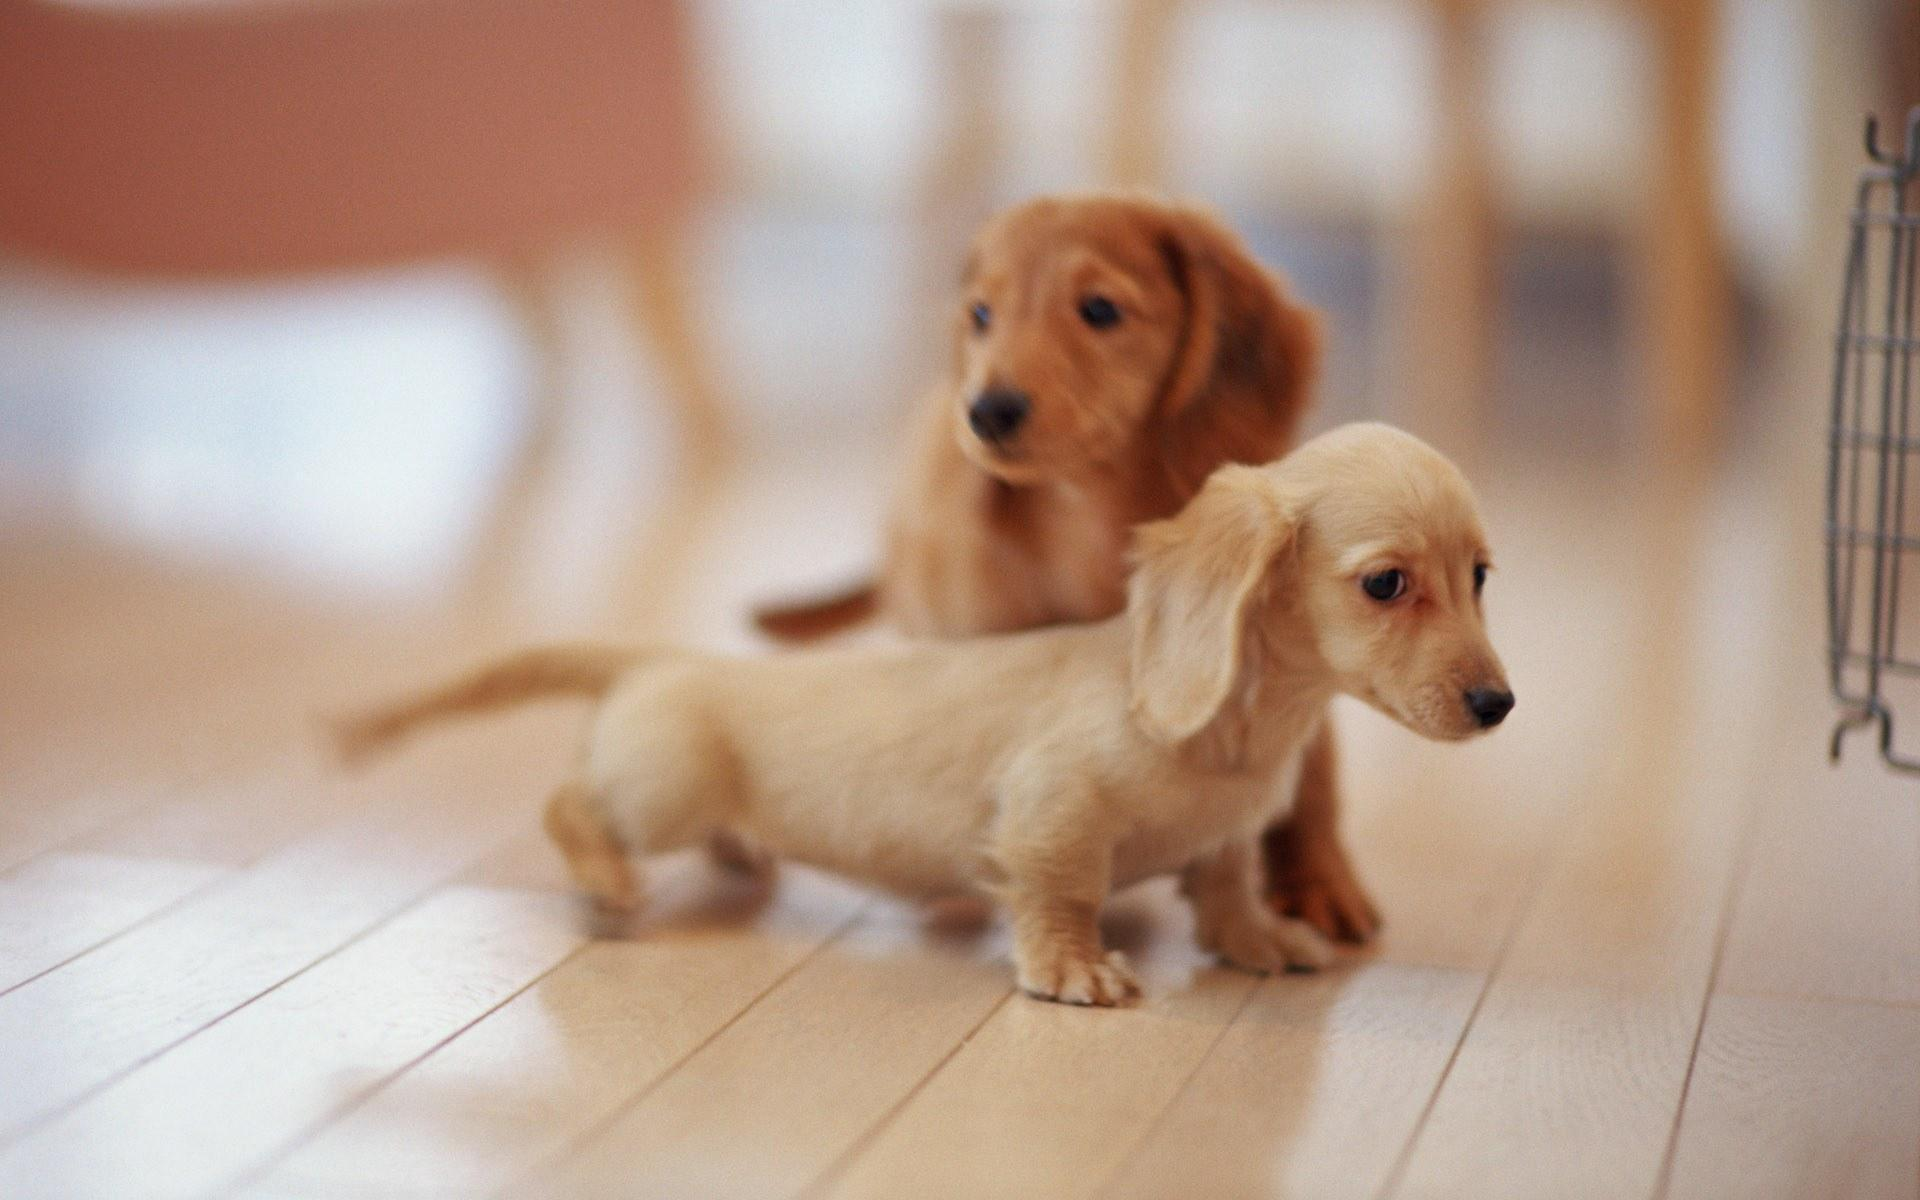 puppies images lovely dog wallpaper hd wallpaper and background